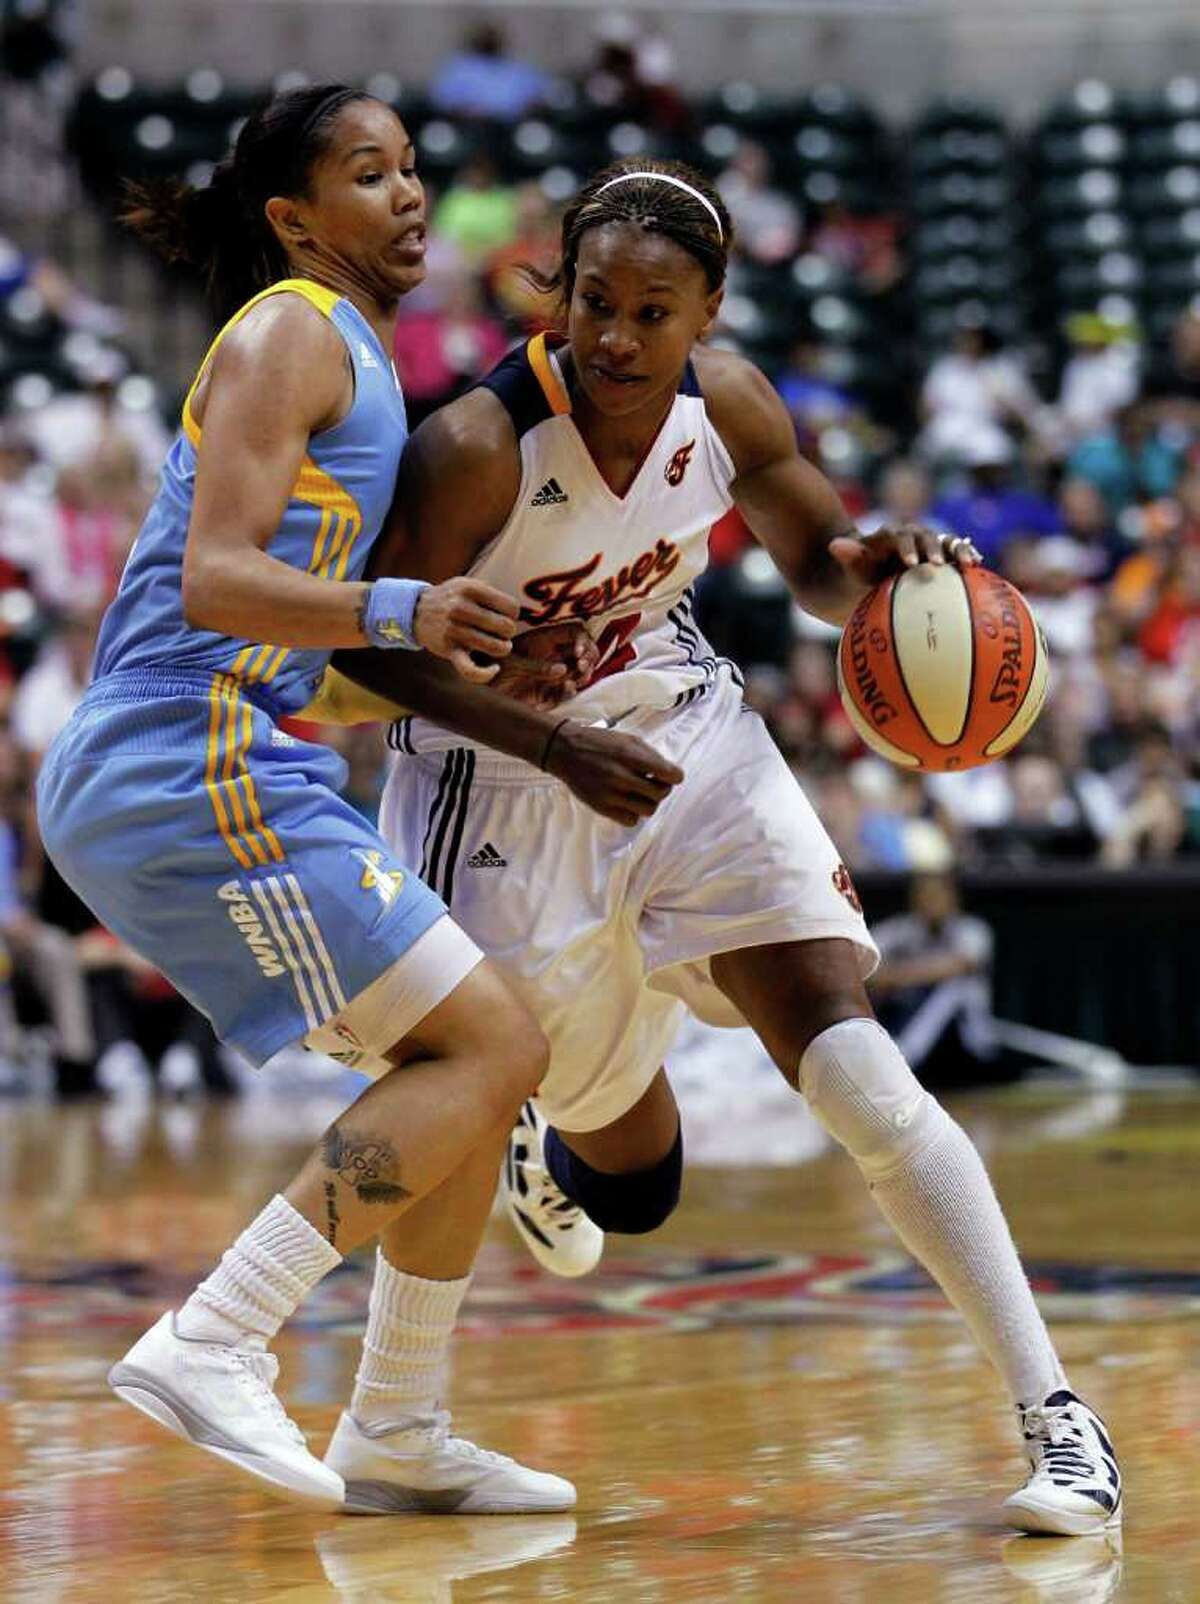 Indiana Fever forward Tamika Catchings, right, works the ball as Chicago Sky's Tamera Young defends during the second half of a WNBA basketball game in Indianapolis, Thursday, July 21, 2011. The Fever defeated the Sky 77-63. (AP Photo/Michael Conroy)